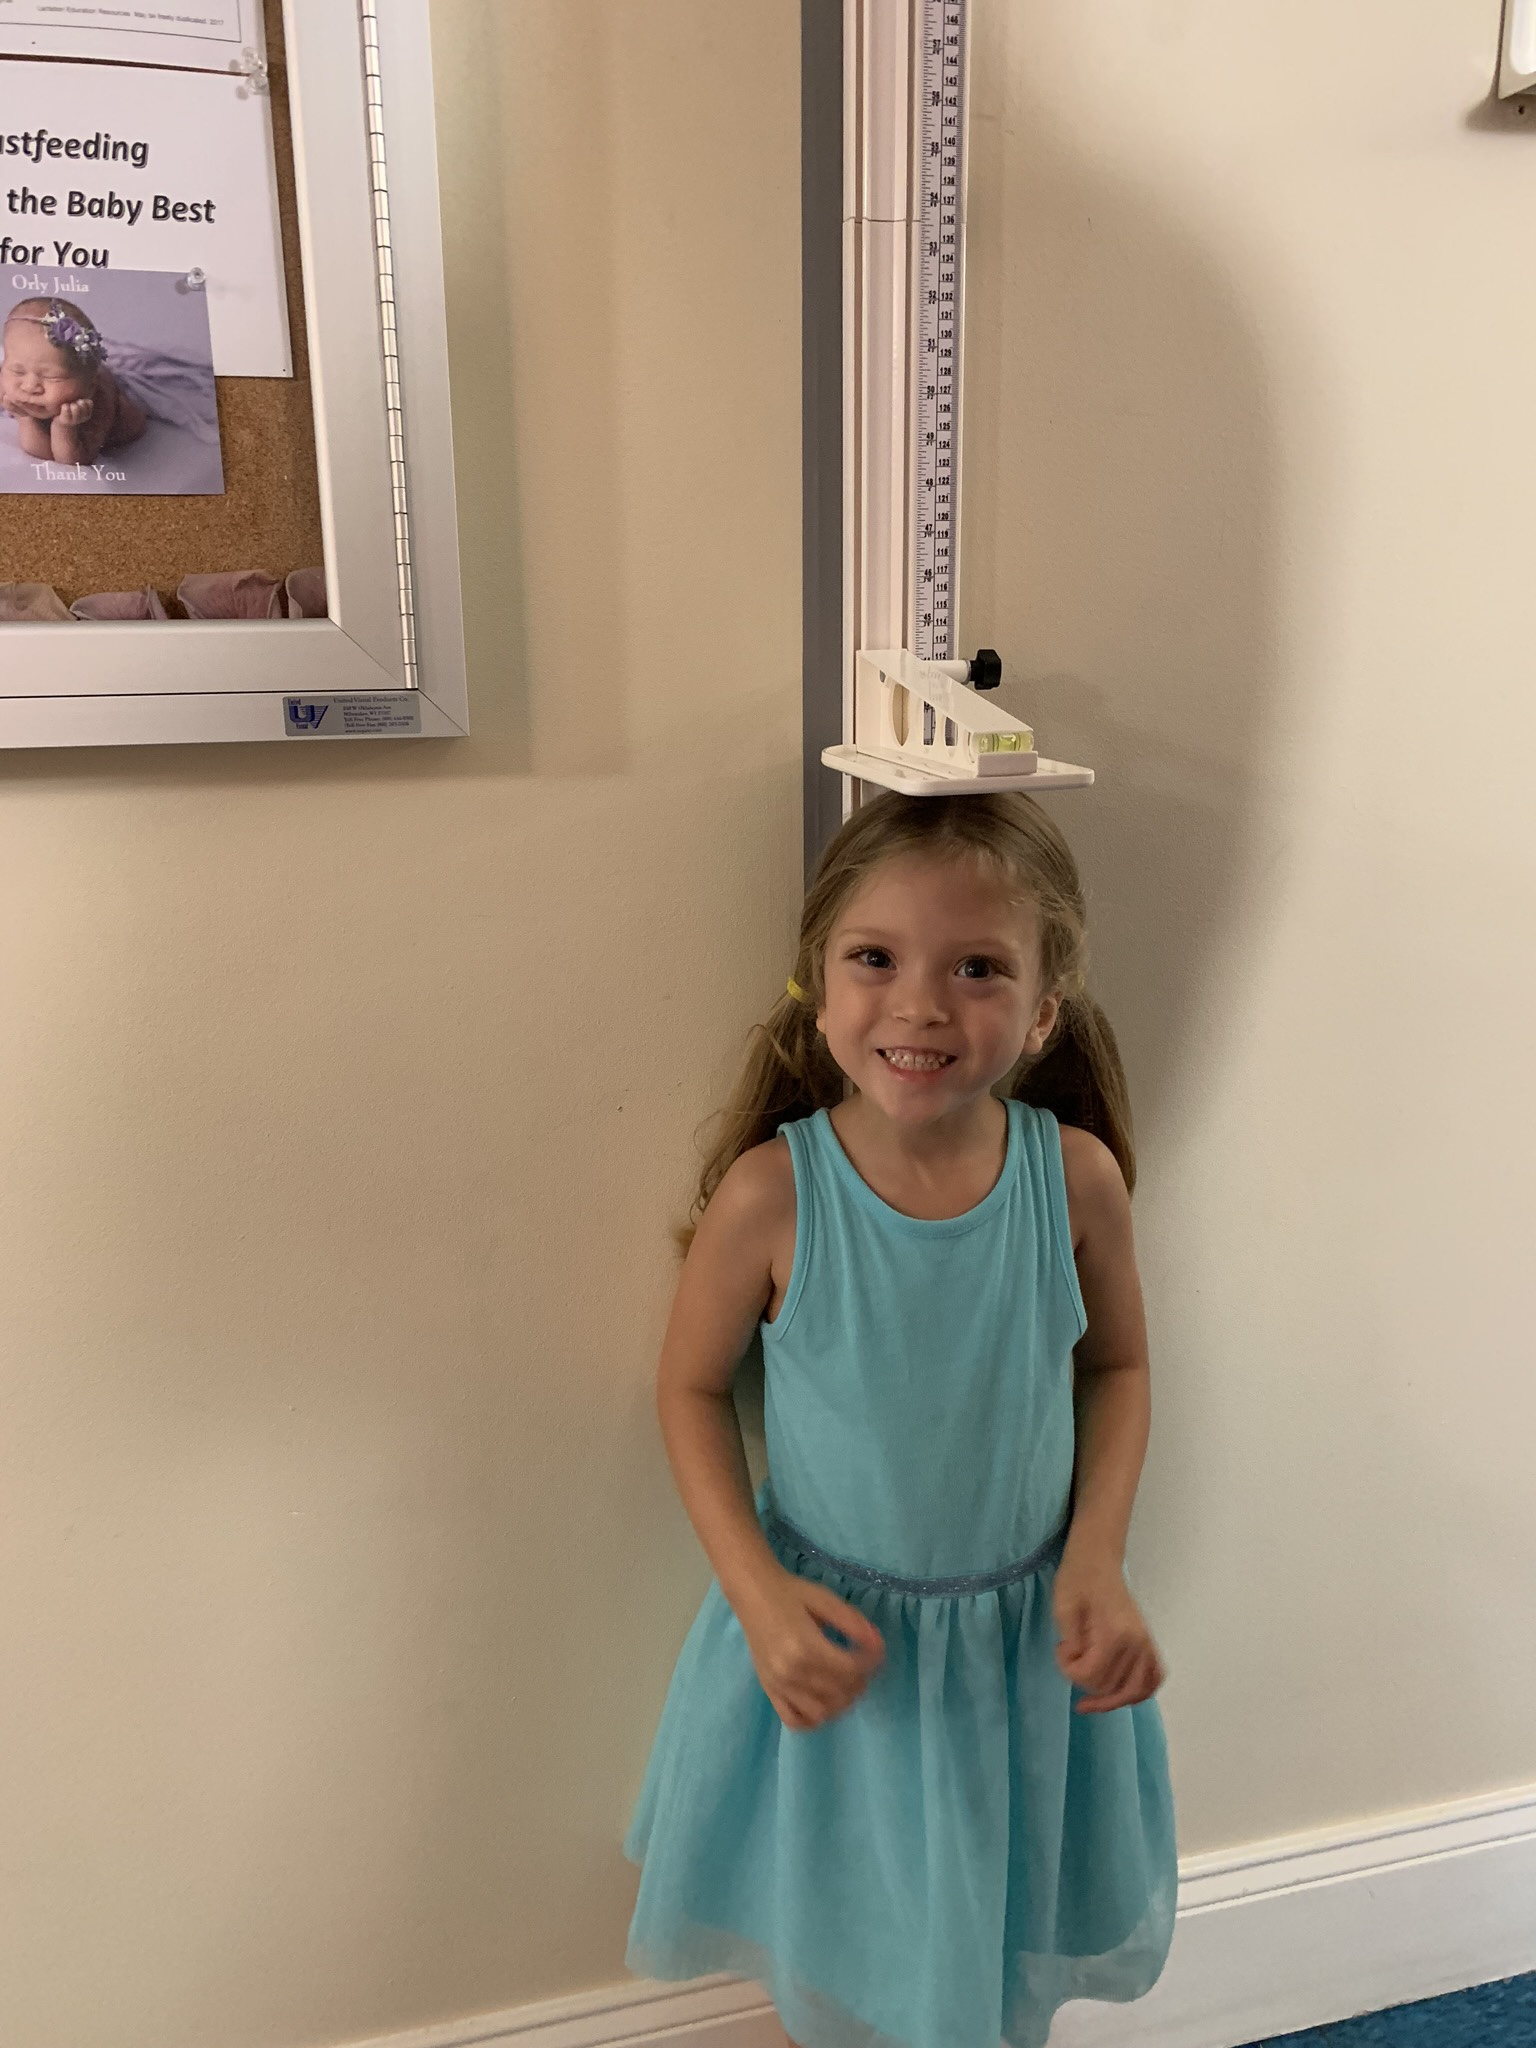 Measuring up at the drs office